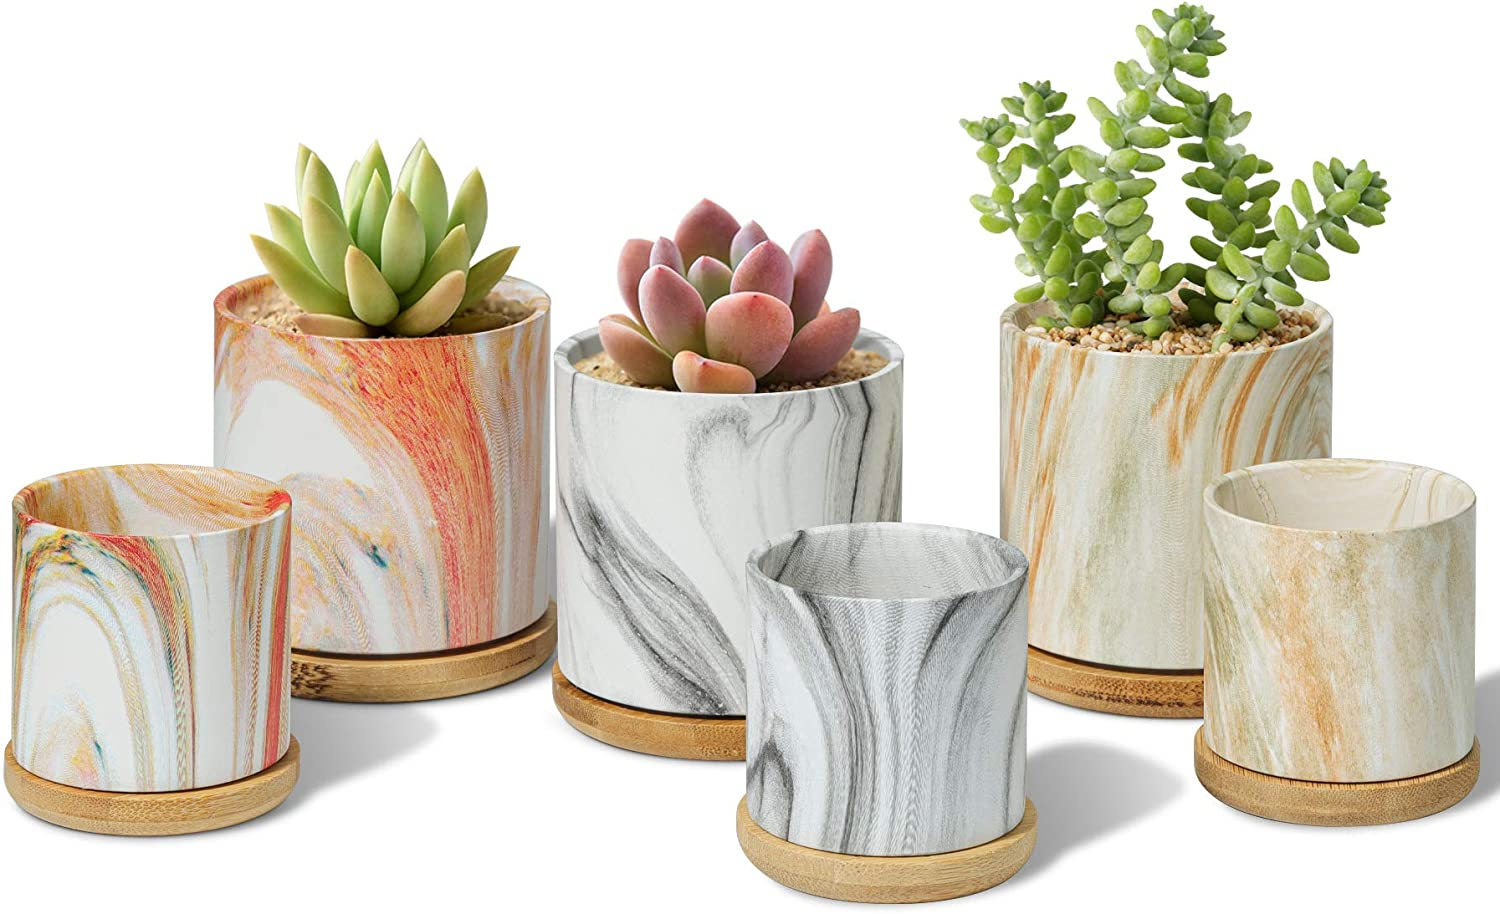 T4U Ceramic Plant Pot 3/2.5 Inch with Bamboo Tray Set of 6, Colorful Cylinder Succulent Pot Marbling Texture, Modern Small Flower Planter, Cactus Herb Container for Indoor Home Office Decor